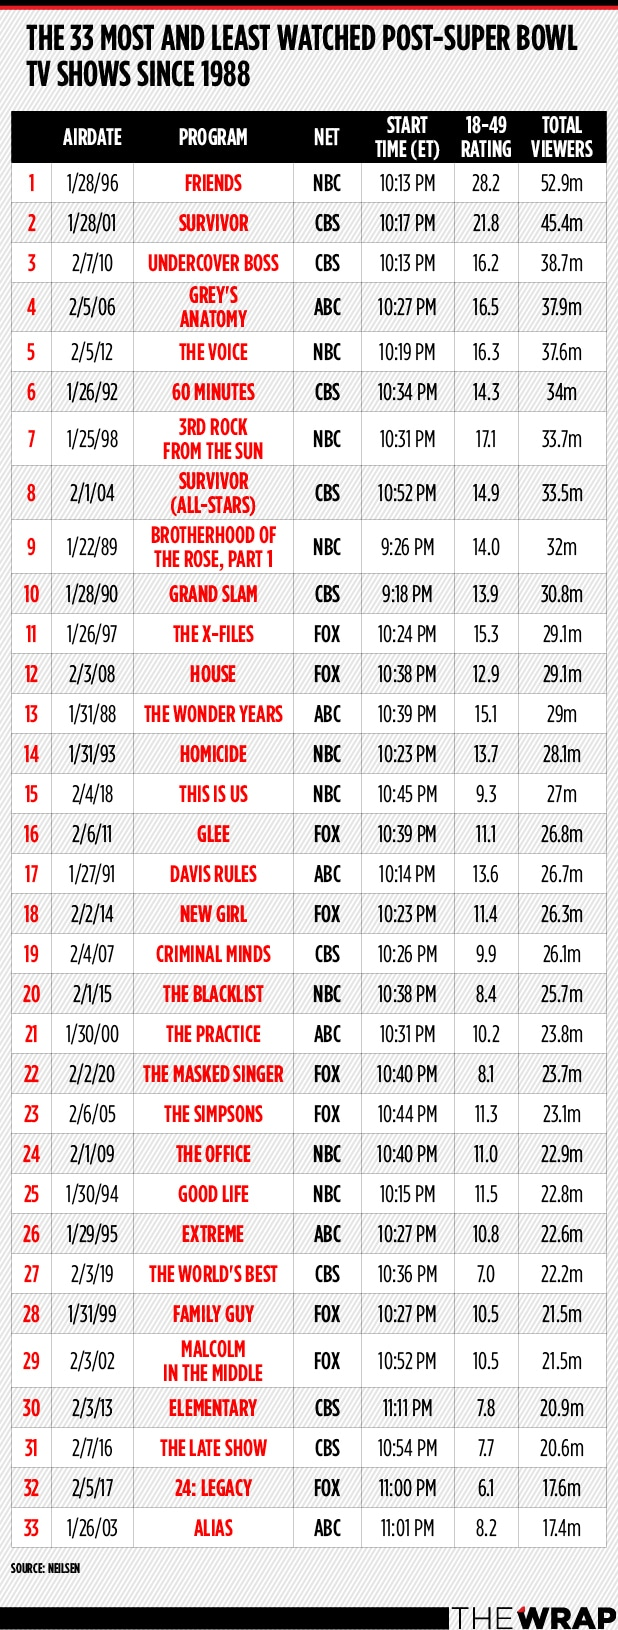 Most-Watched Post-Super Bowl shows